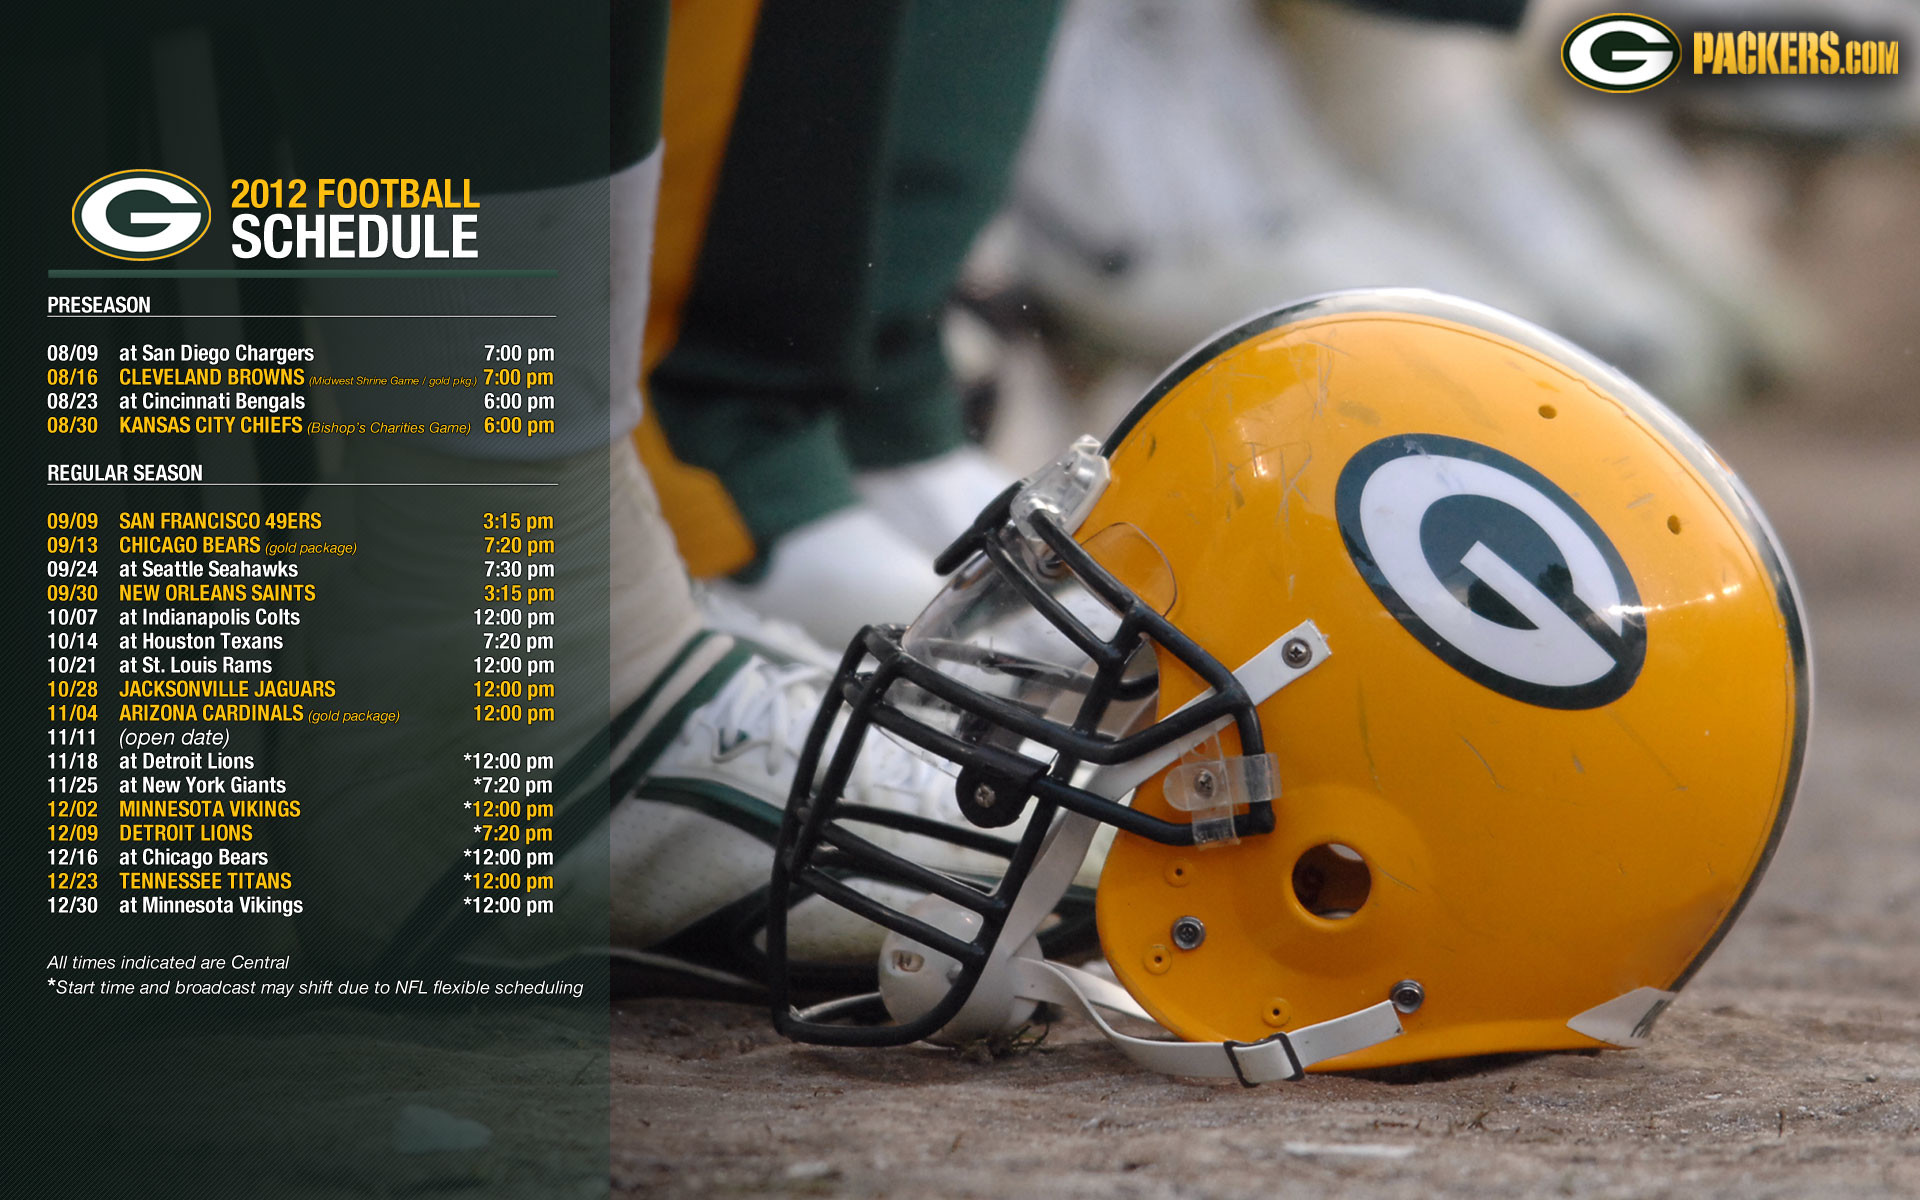 Green Bay Packer Wallpaper: Green Bay Packers Wallpaper (65+ Images